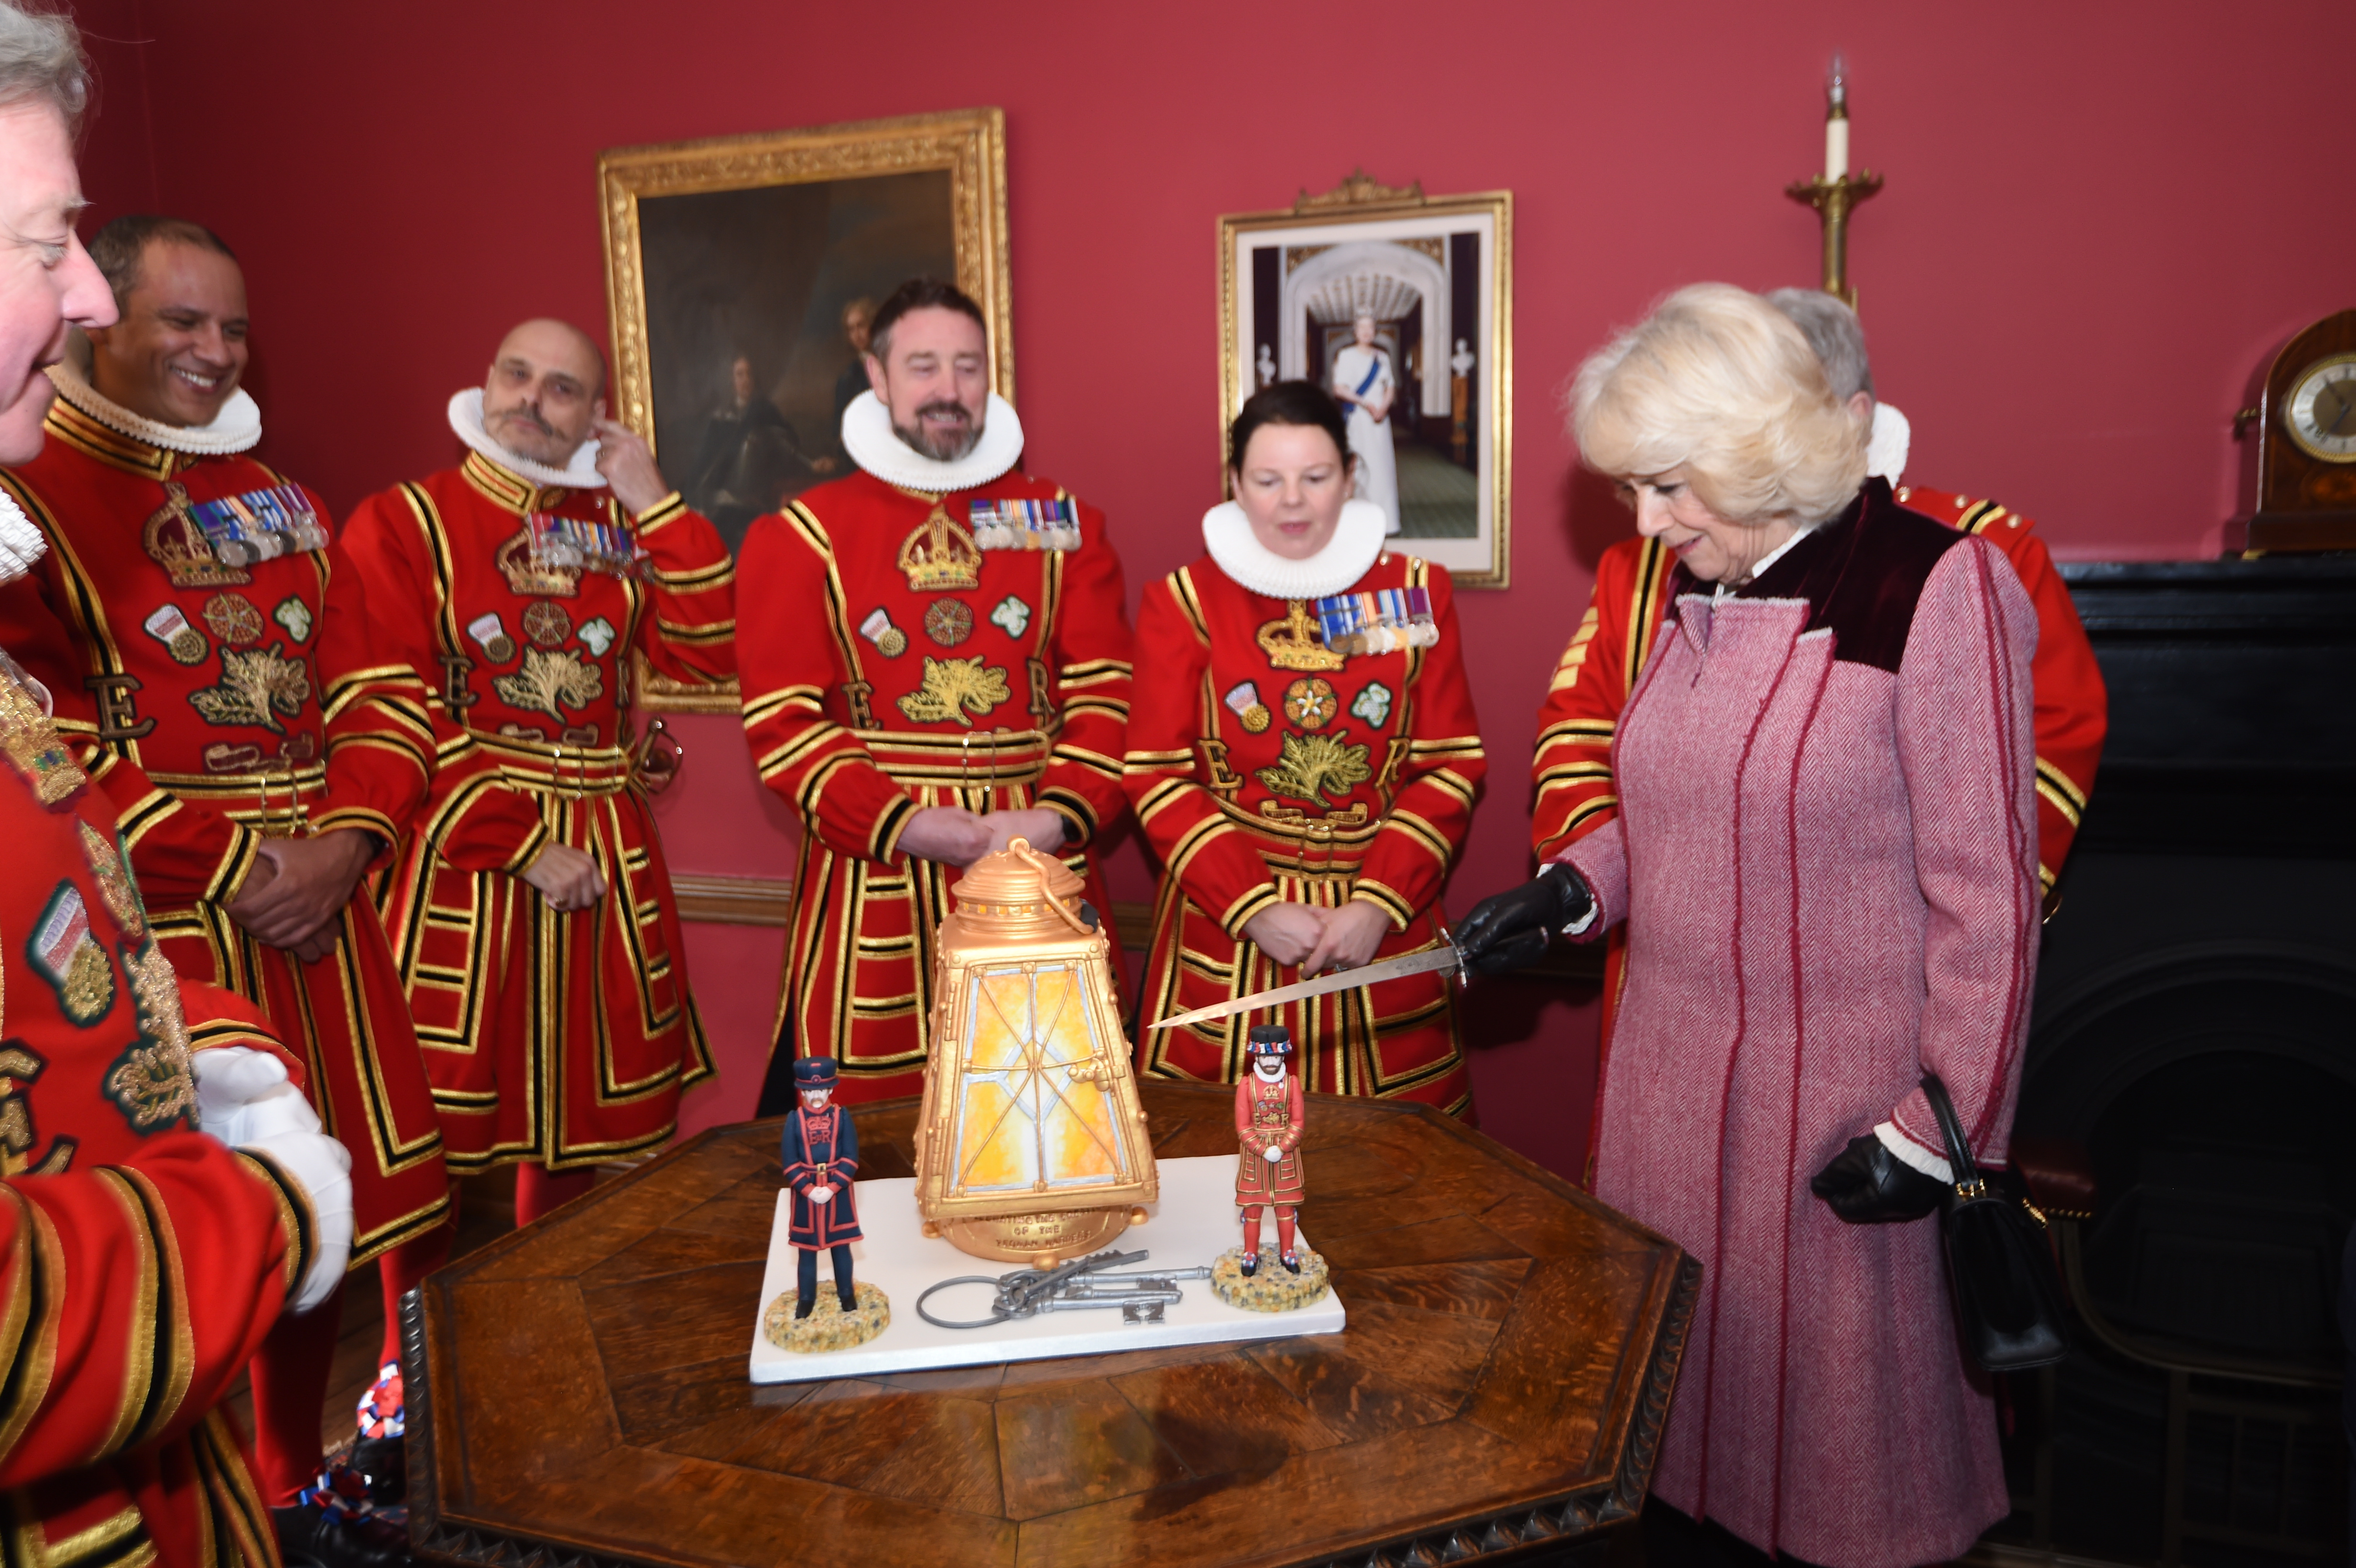 The Duchess of Cornwall cuts a cake at the Tower of London